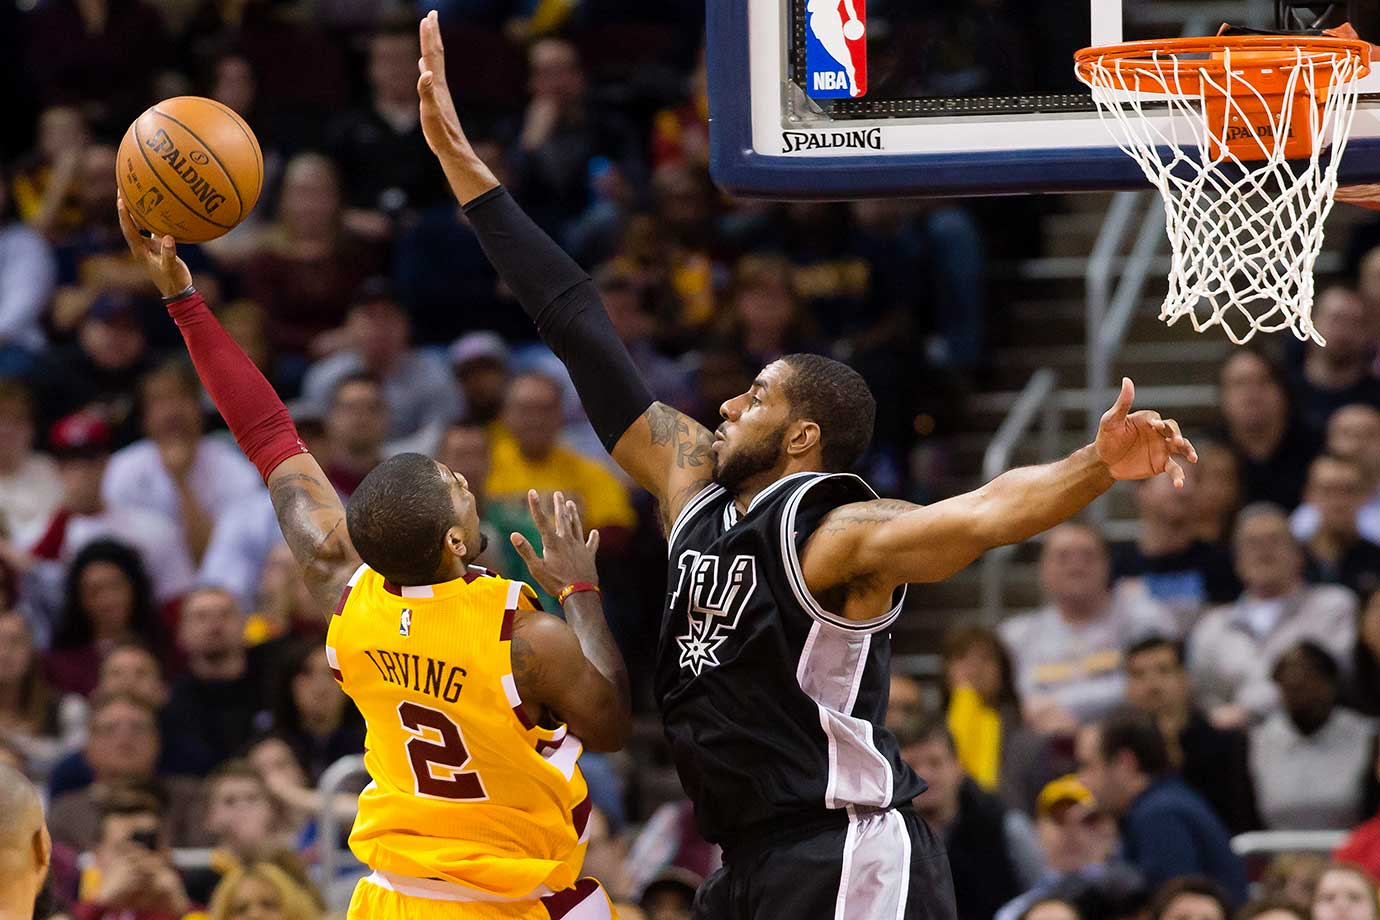 Kyrie Irving of the Cleveland Cavaliers shoots over LaMarcus Aldridge of the San Antonio Spurs at Quicken Loans Arena. The Cavaliers defeated the Spurs 117-103.